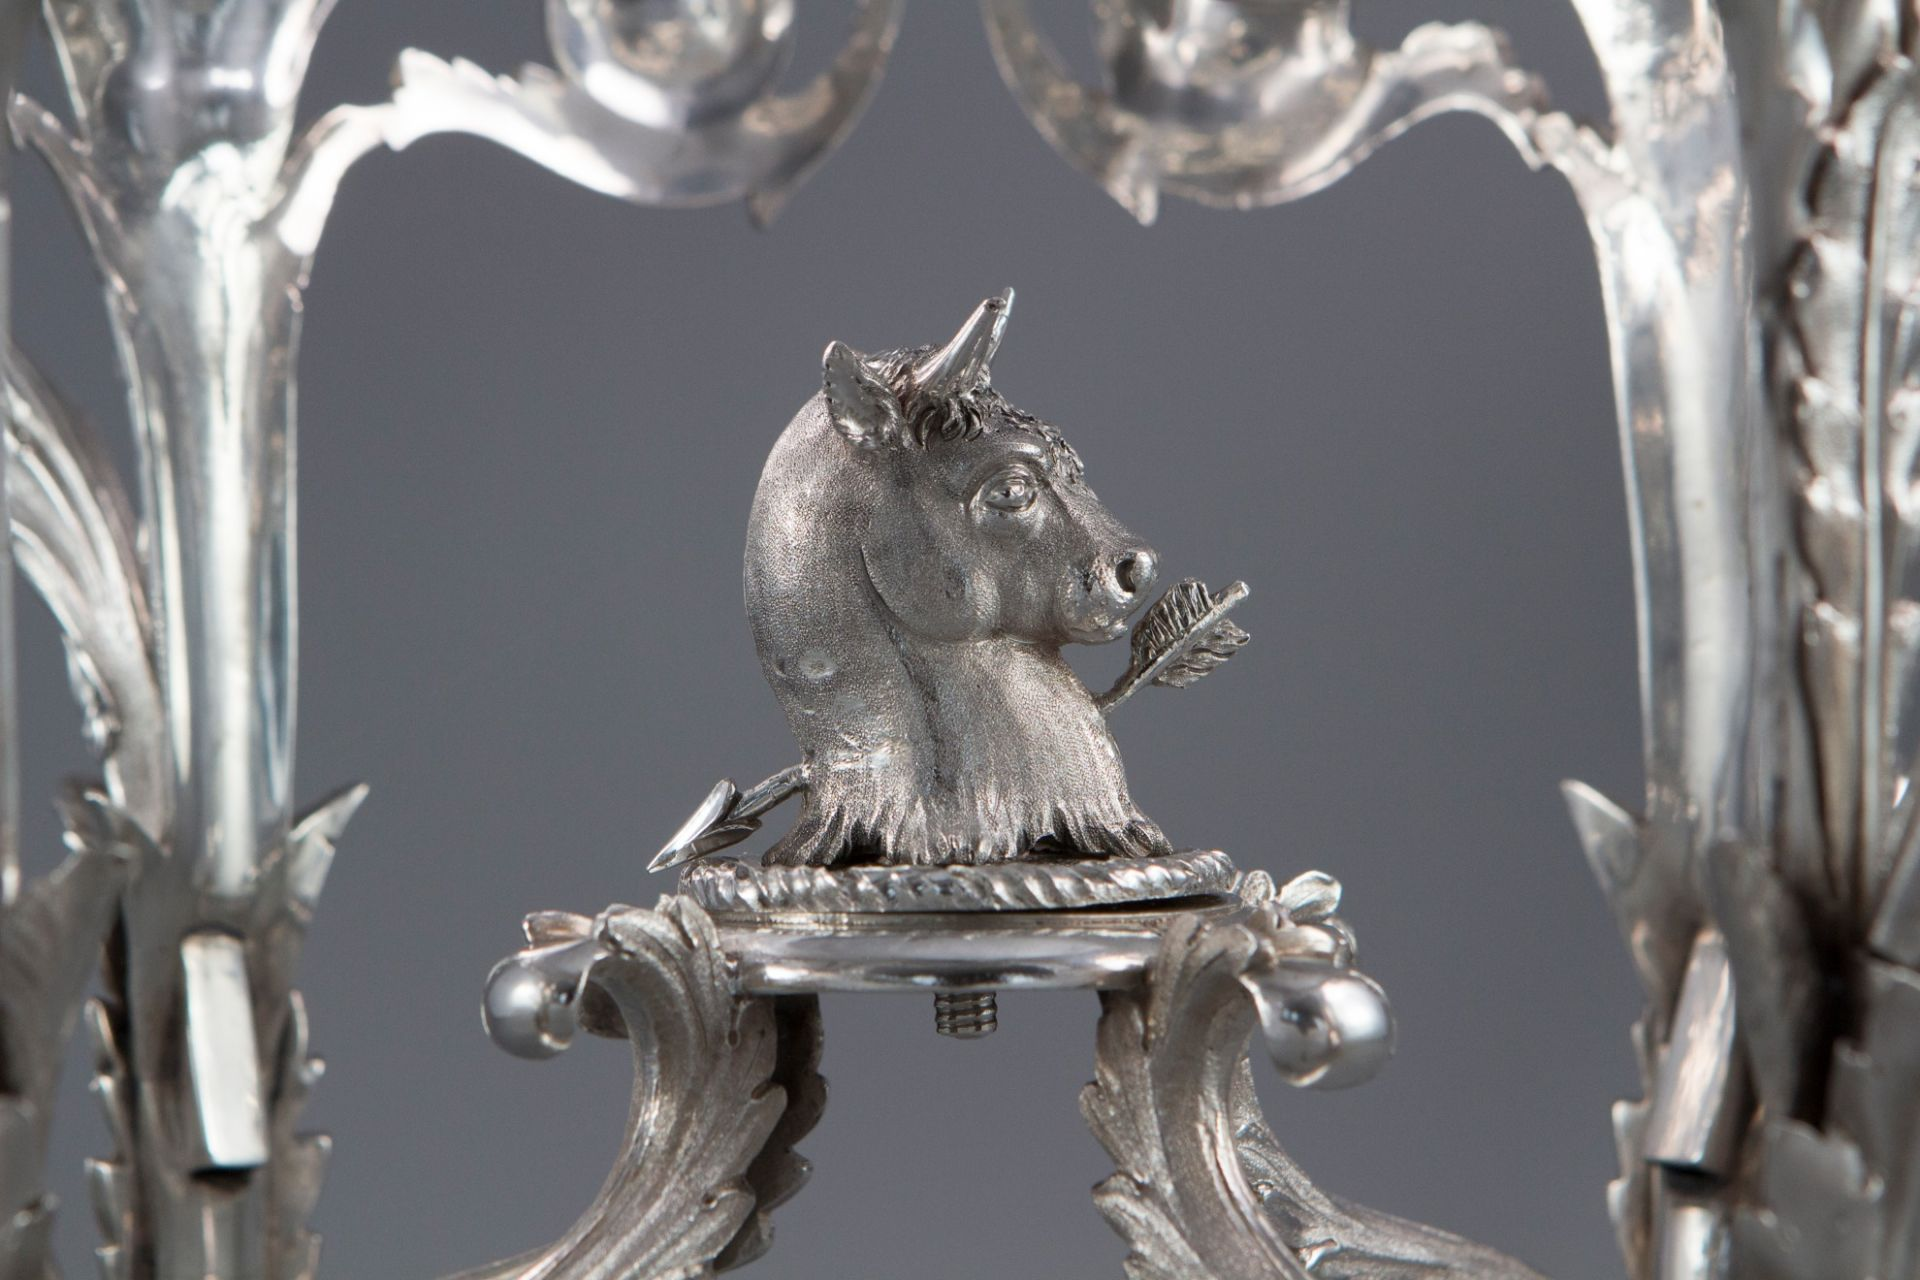 A George III Silver Epergne or Centrepiece, London 1808 by William Pitts